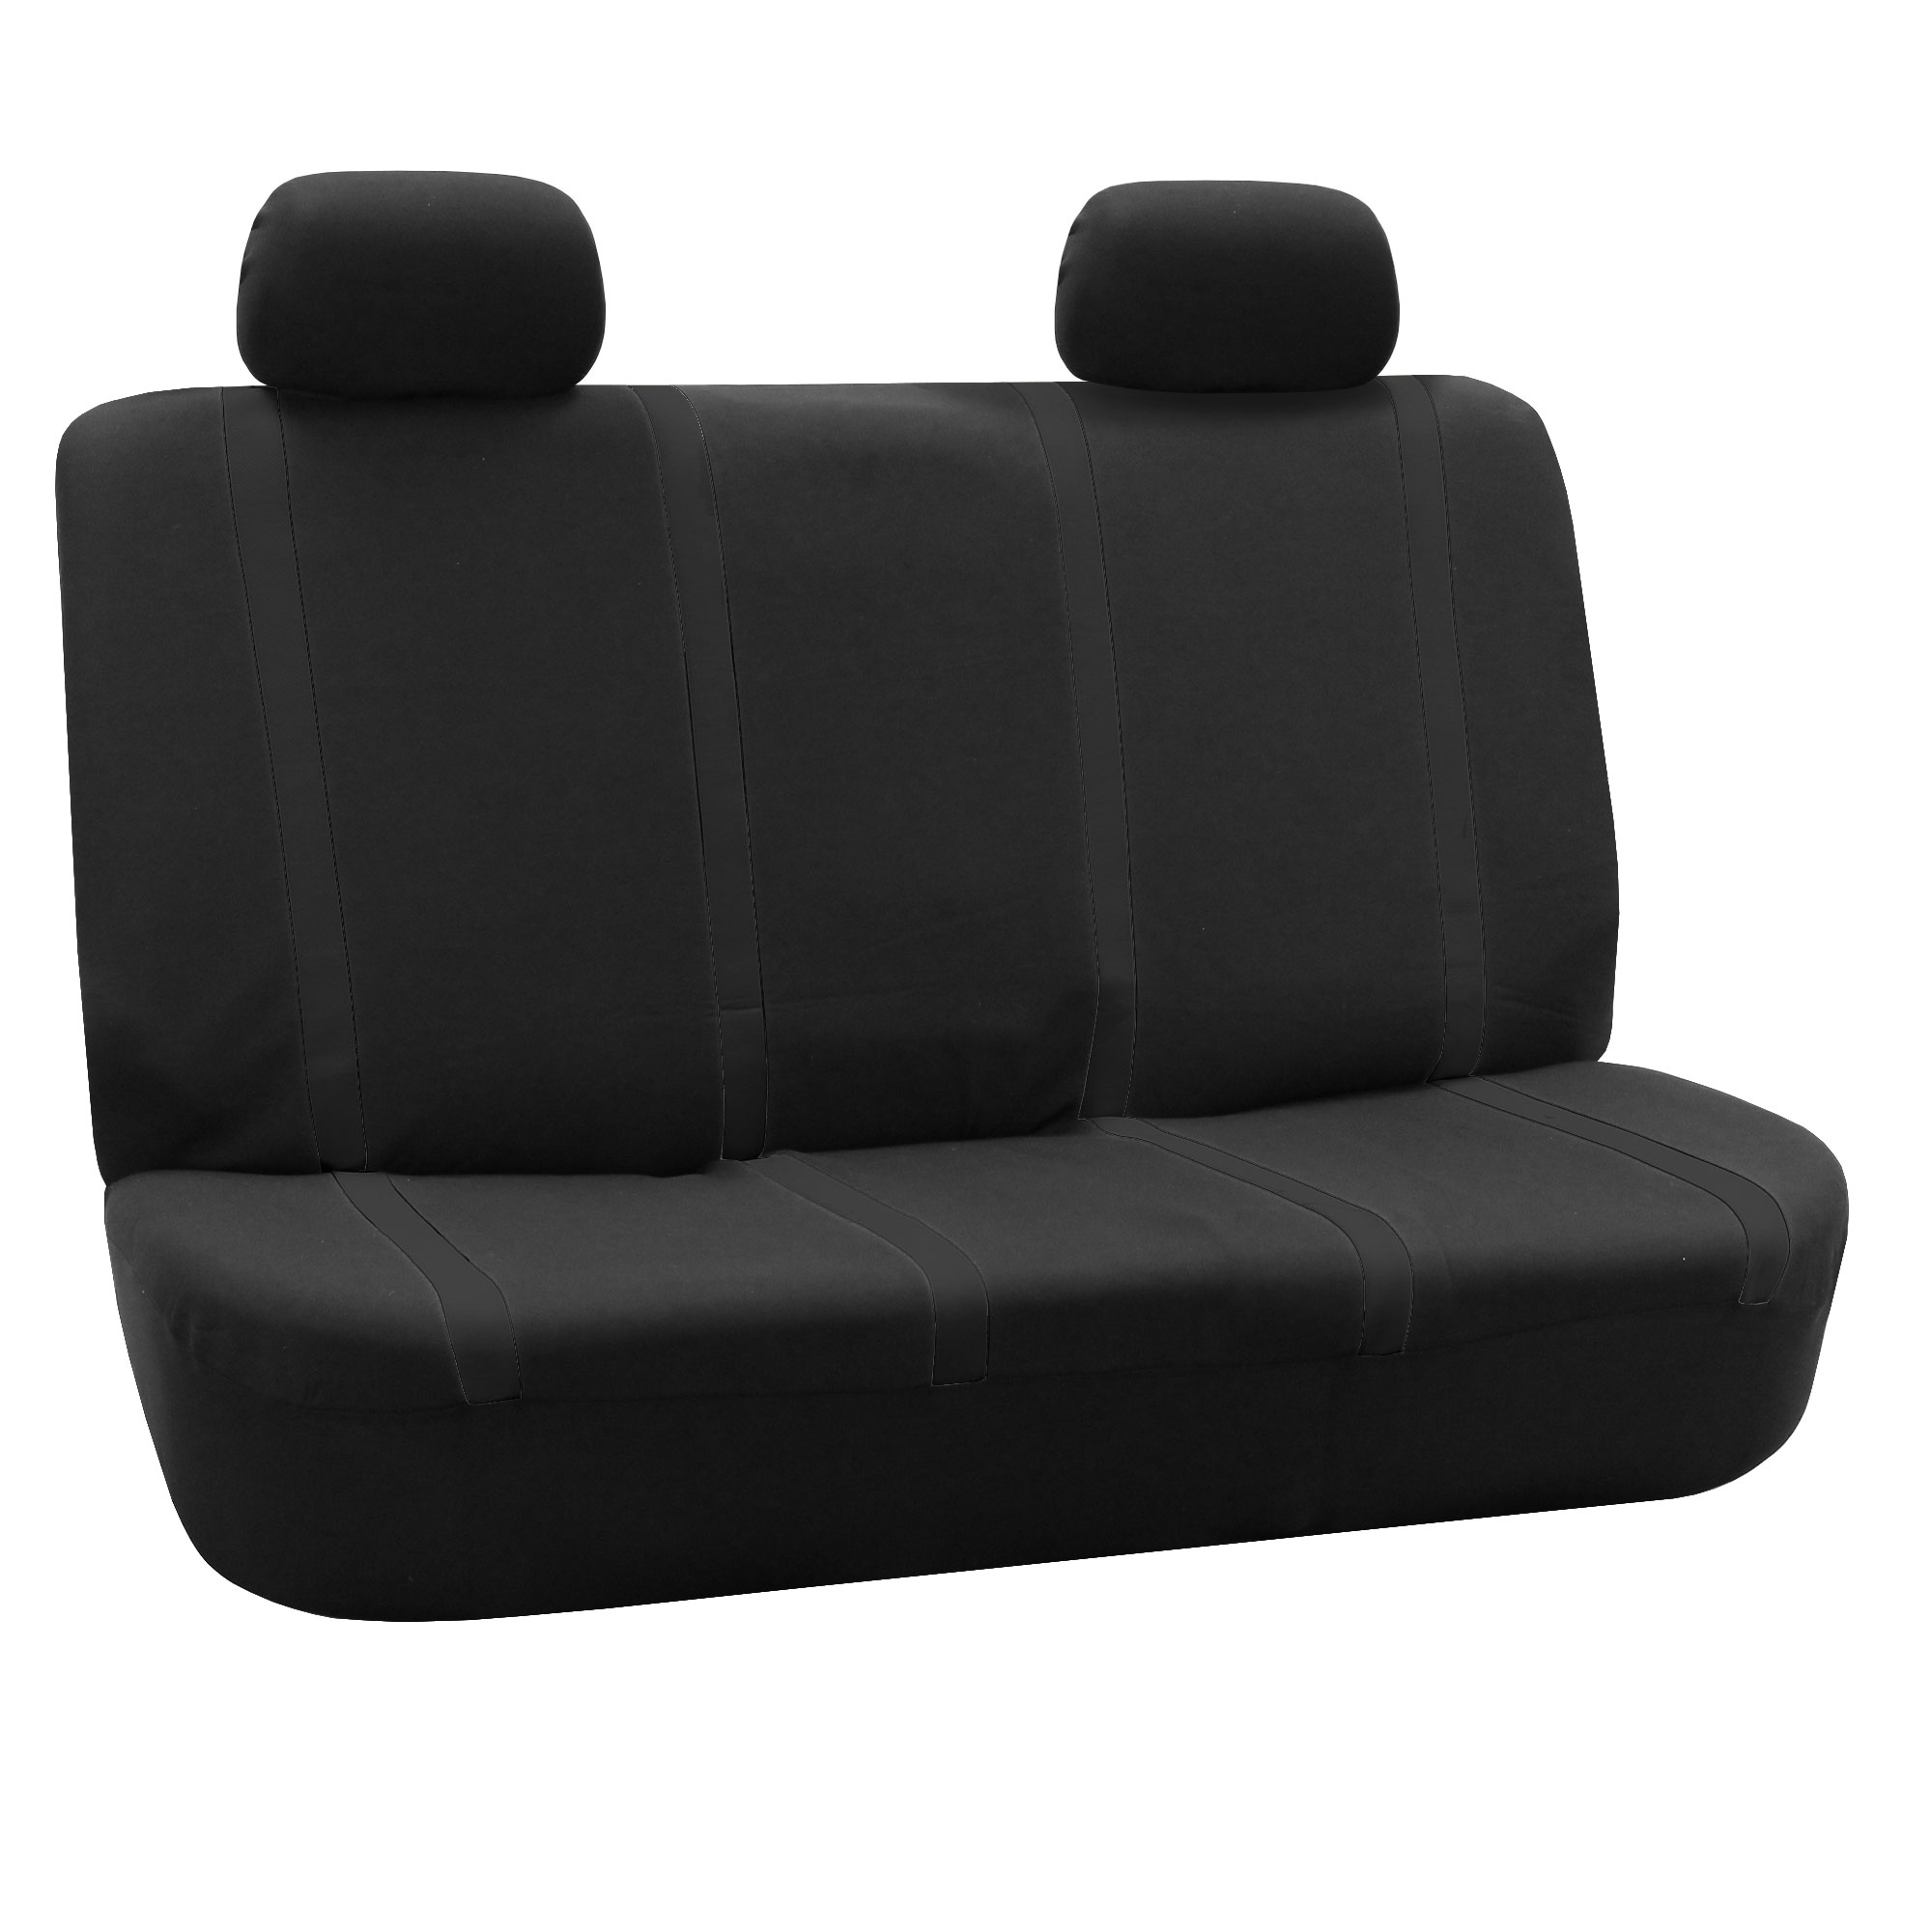 Auto Seat Covers for Car Sedan Truck Van Universal Seat Covers 12